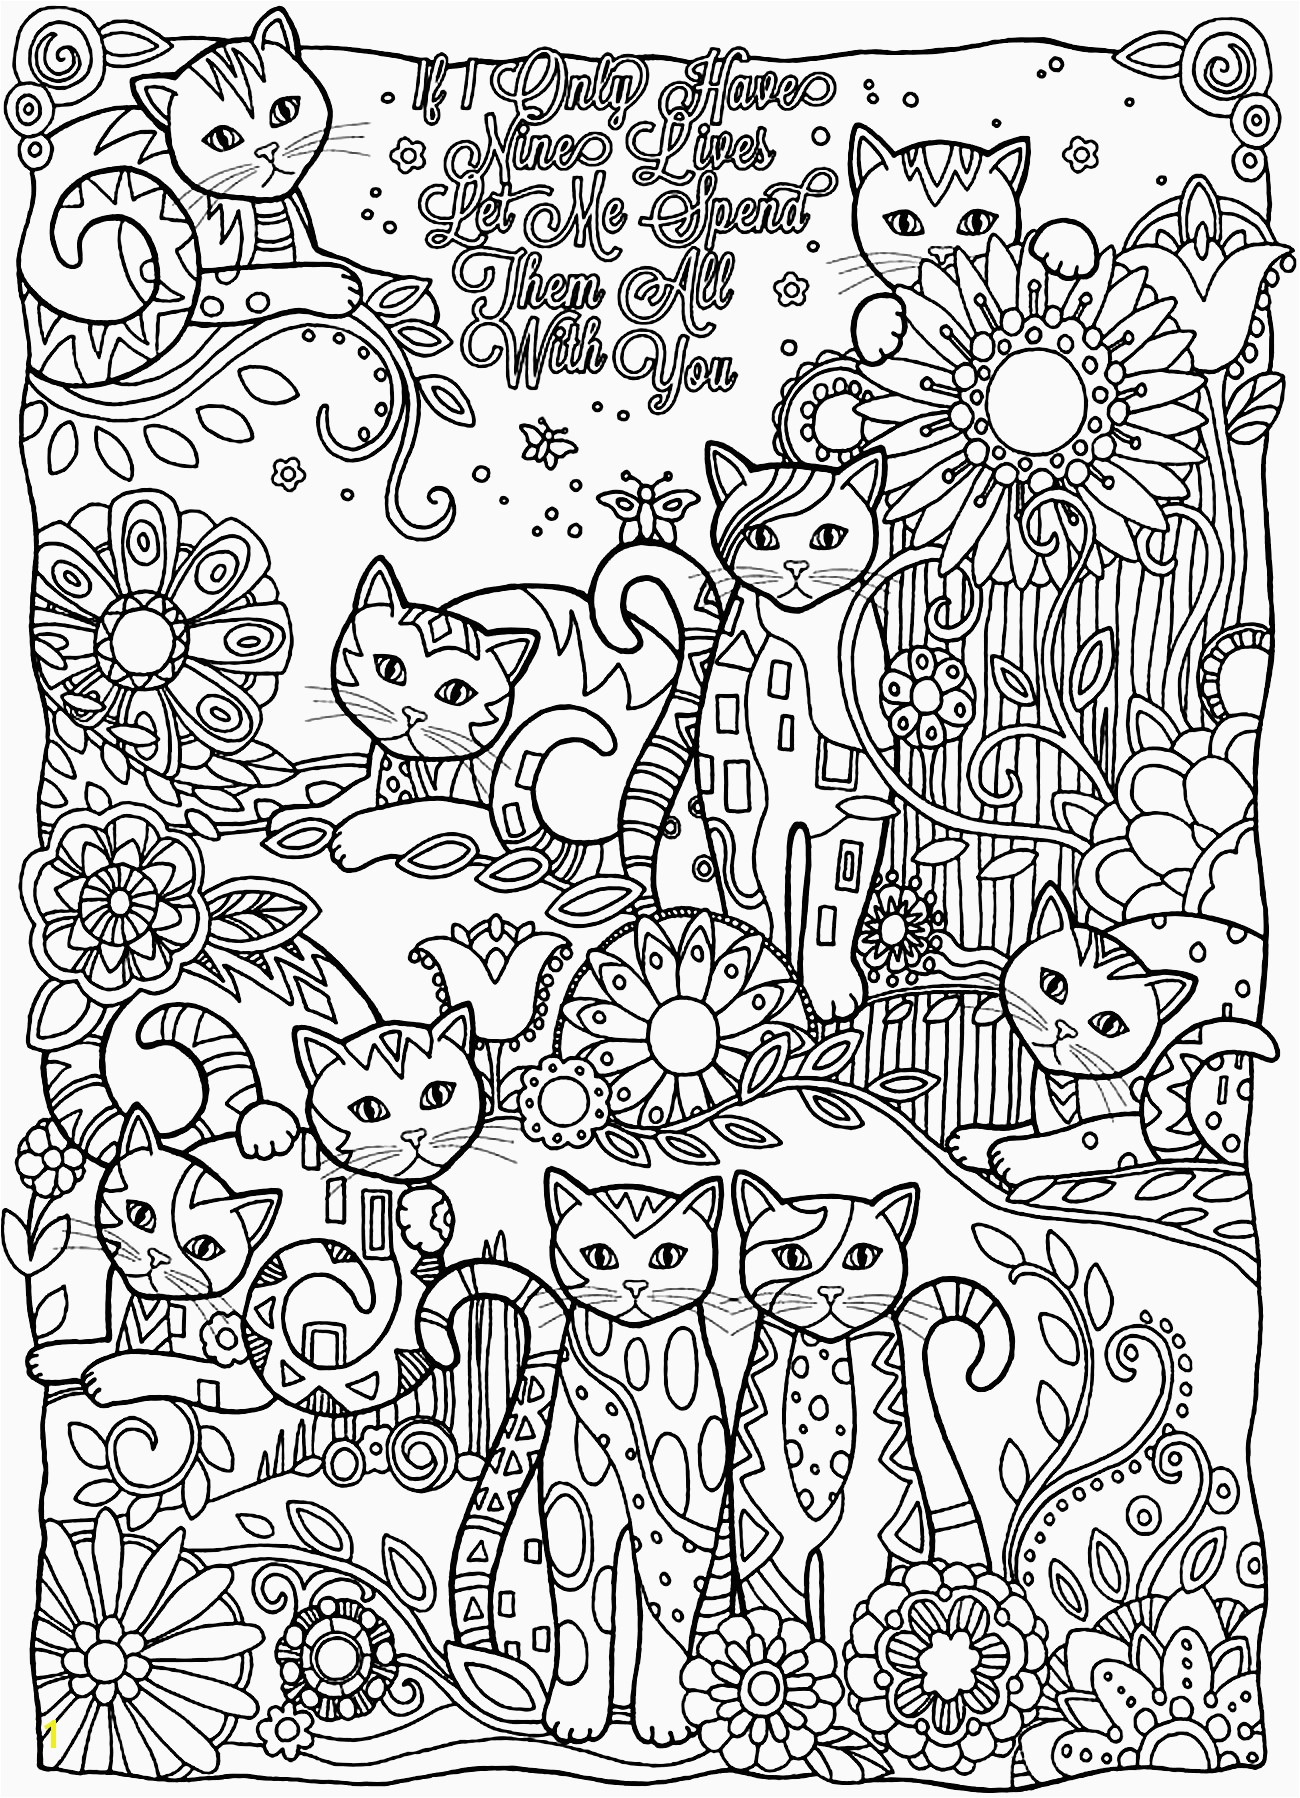 New Cute Printable Coloring Pages New Printable Od Dog Coloring Pages